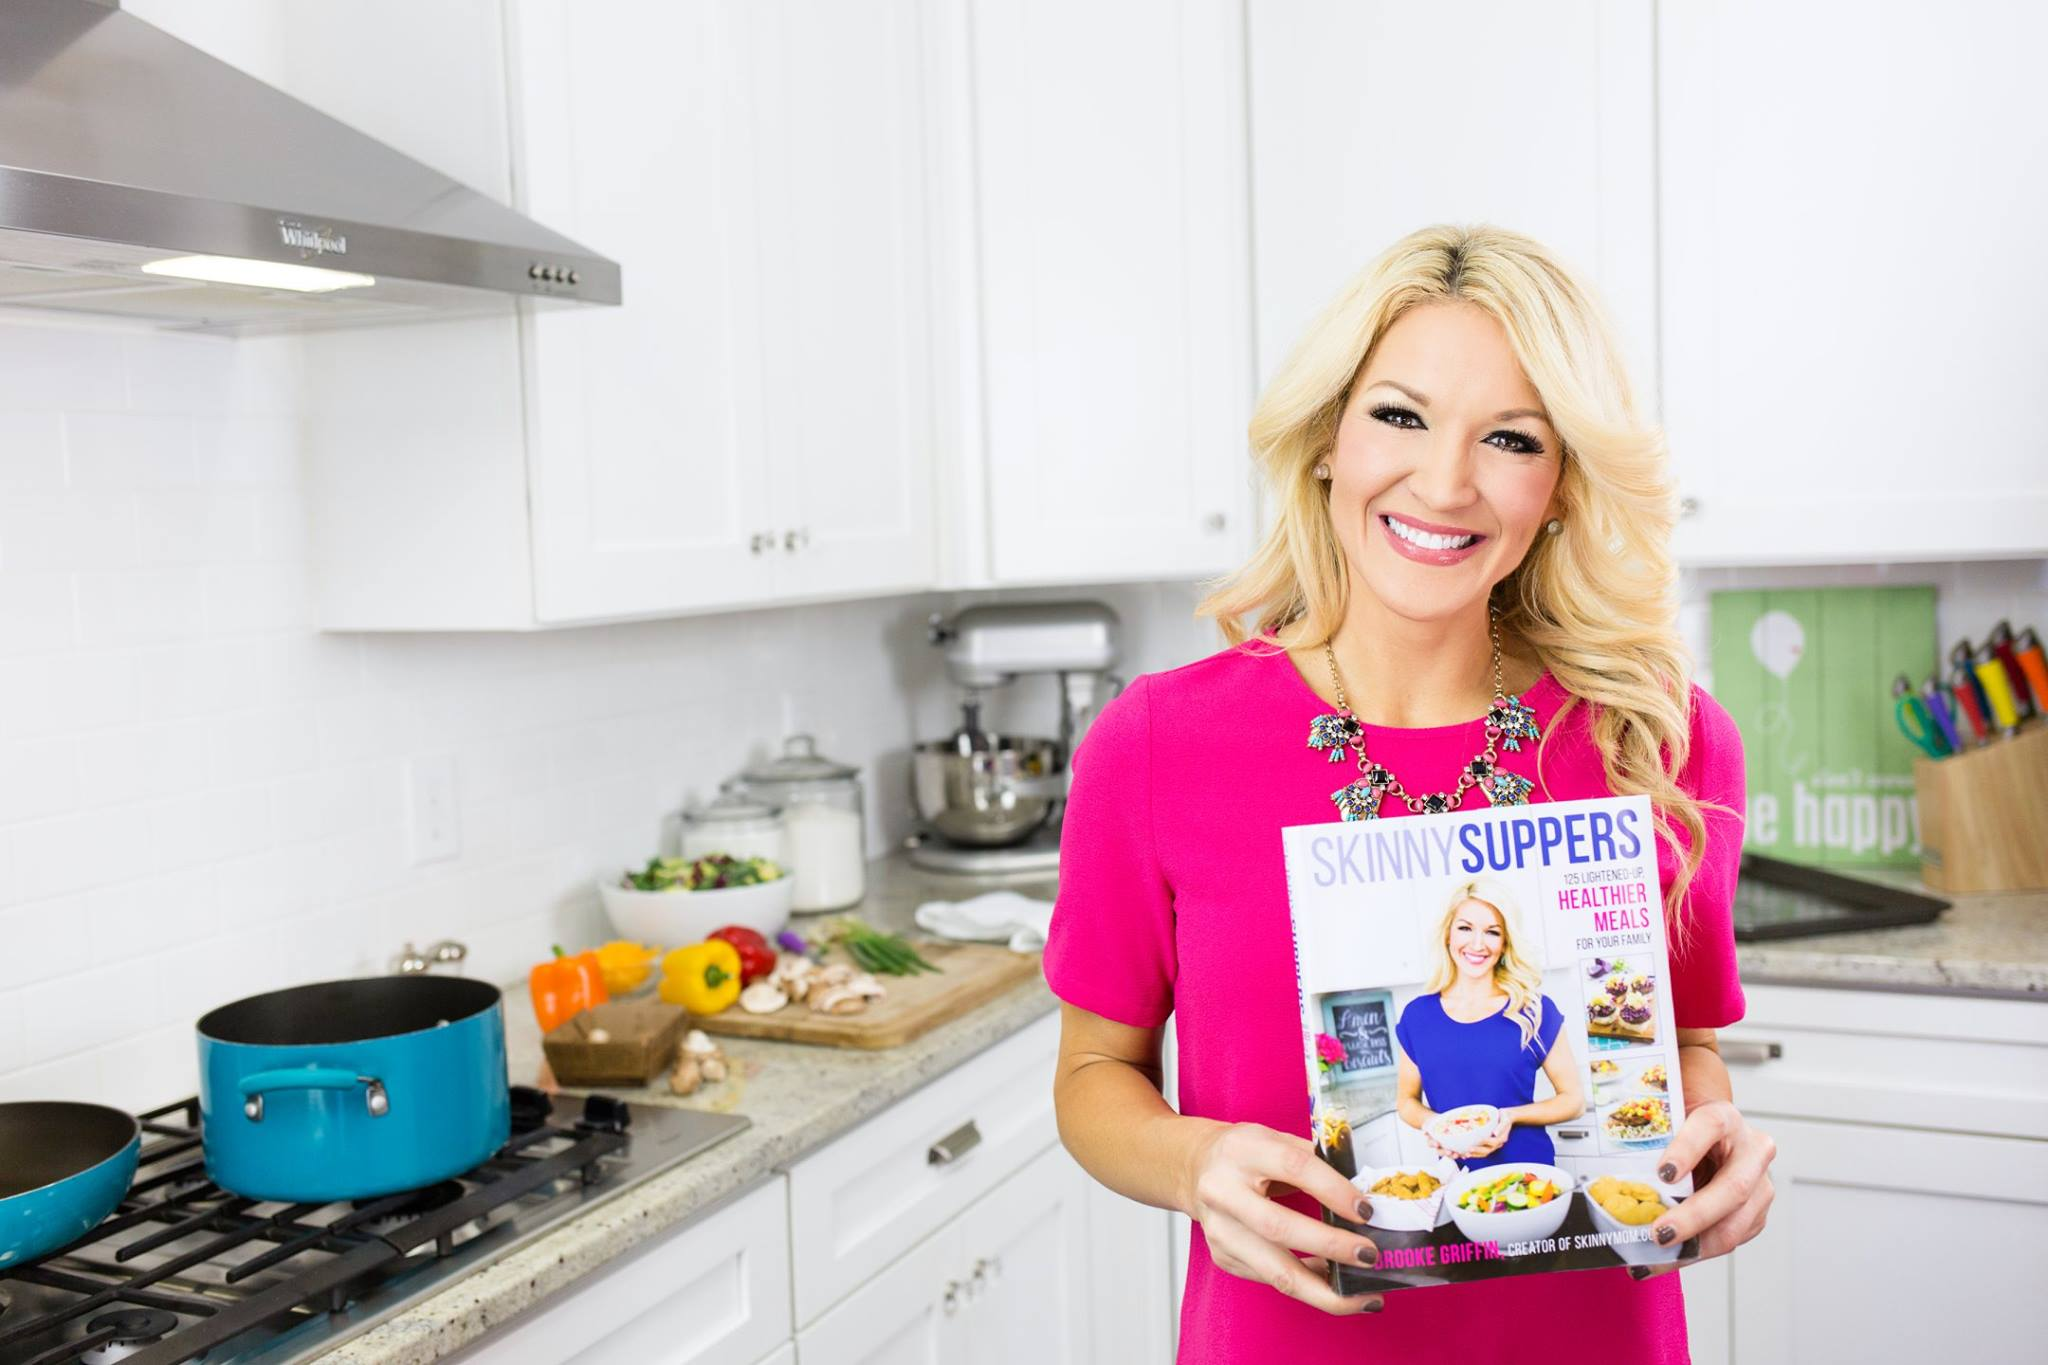 Brooke Griffin, Founder and CEO of Skinny Mom, with her new cookbook Skinny Suppers.